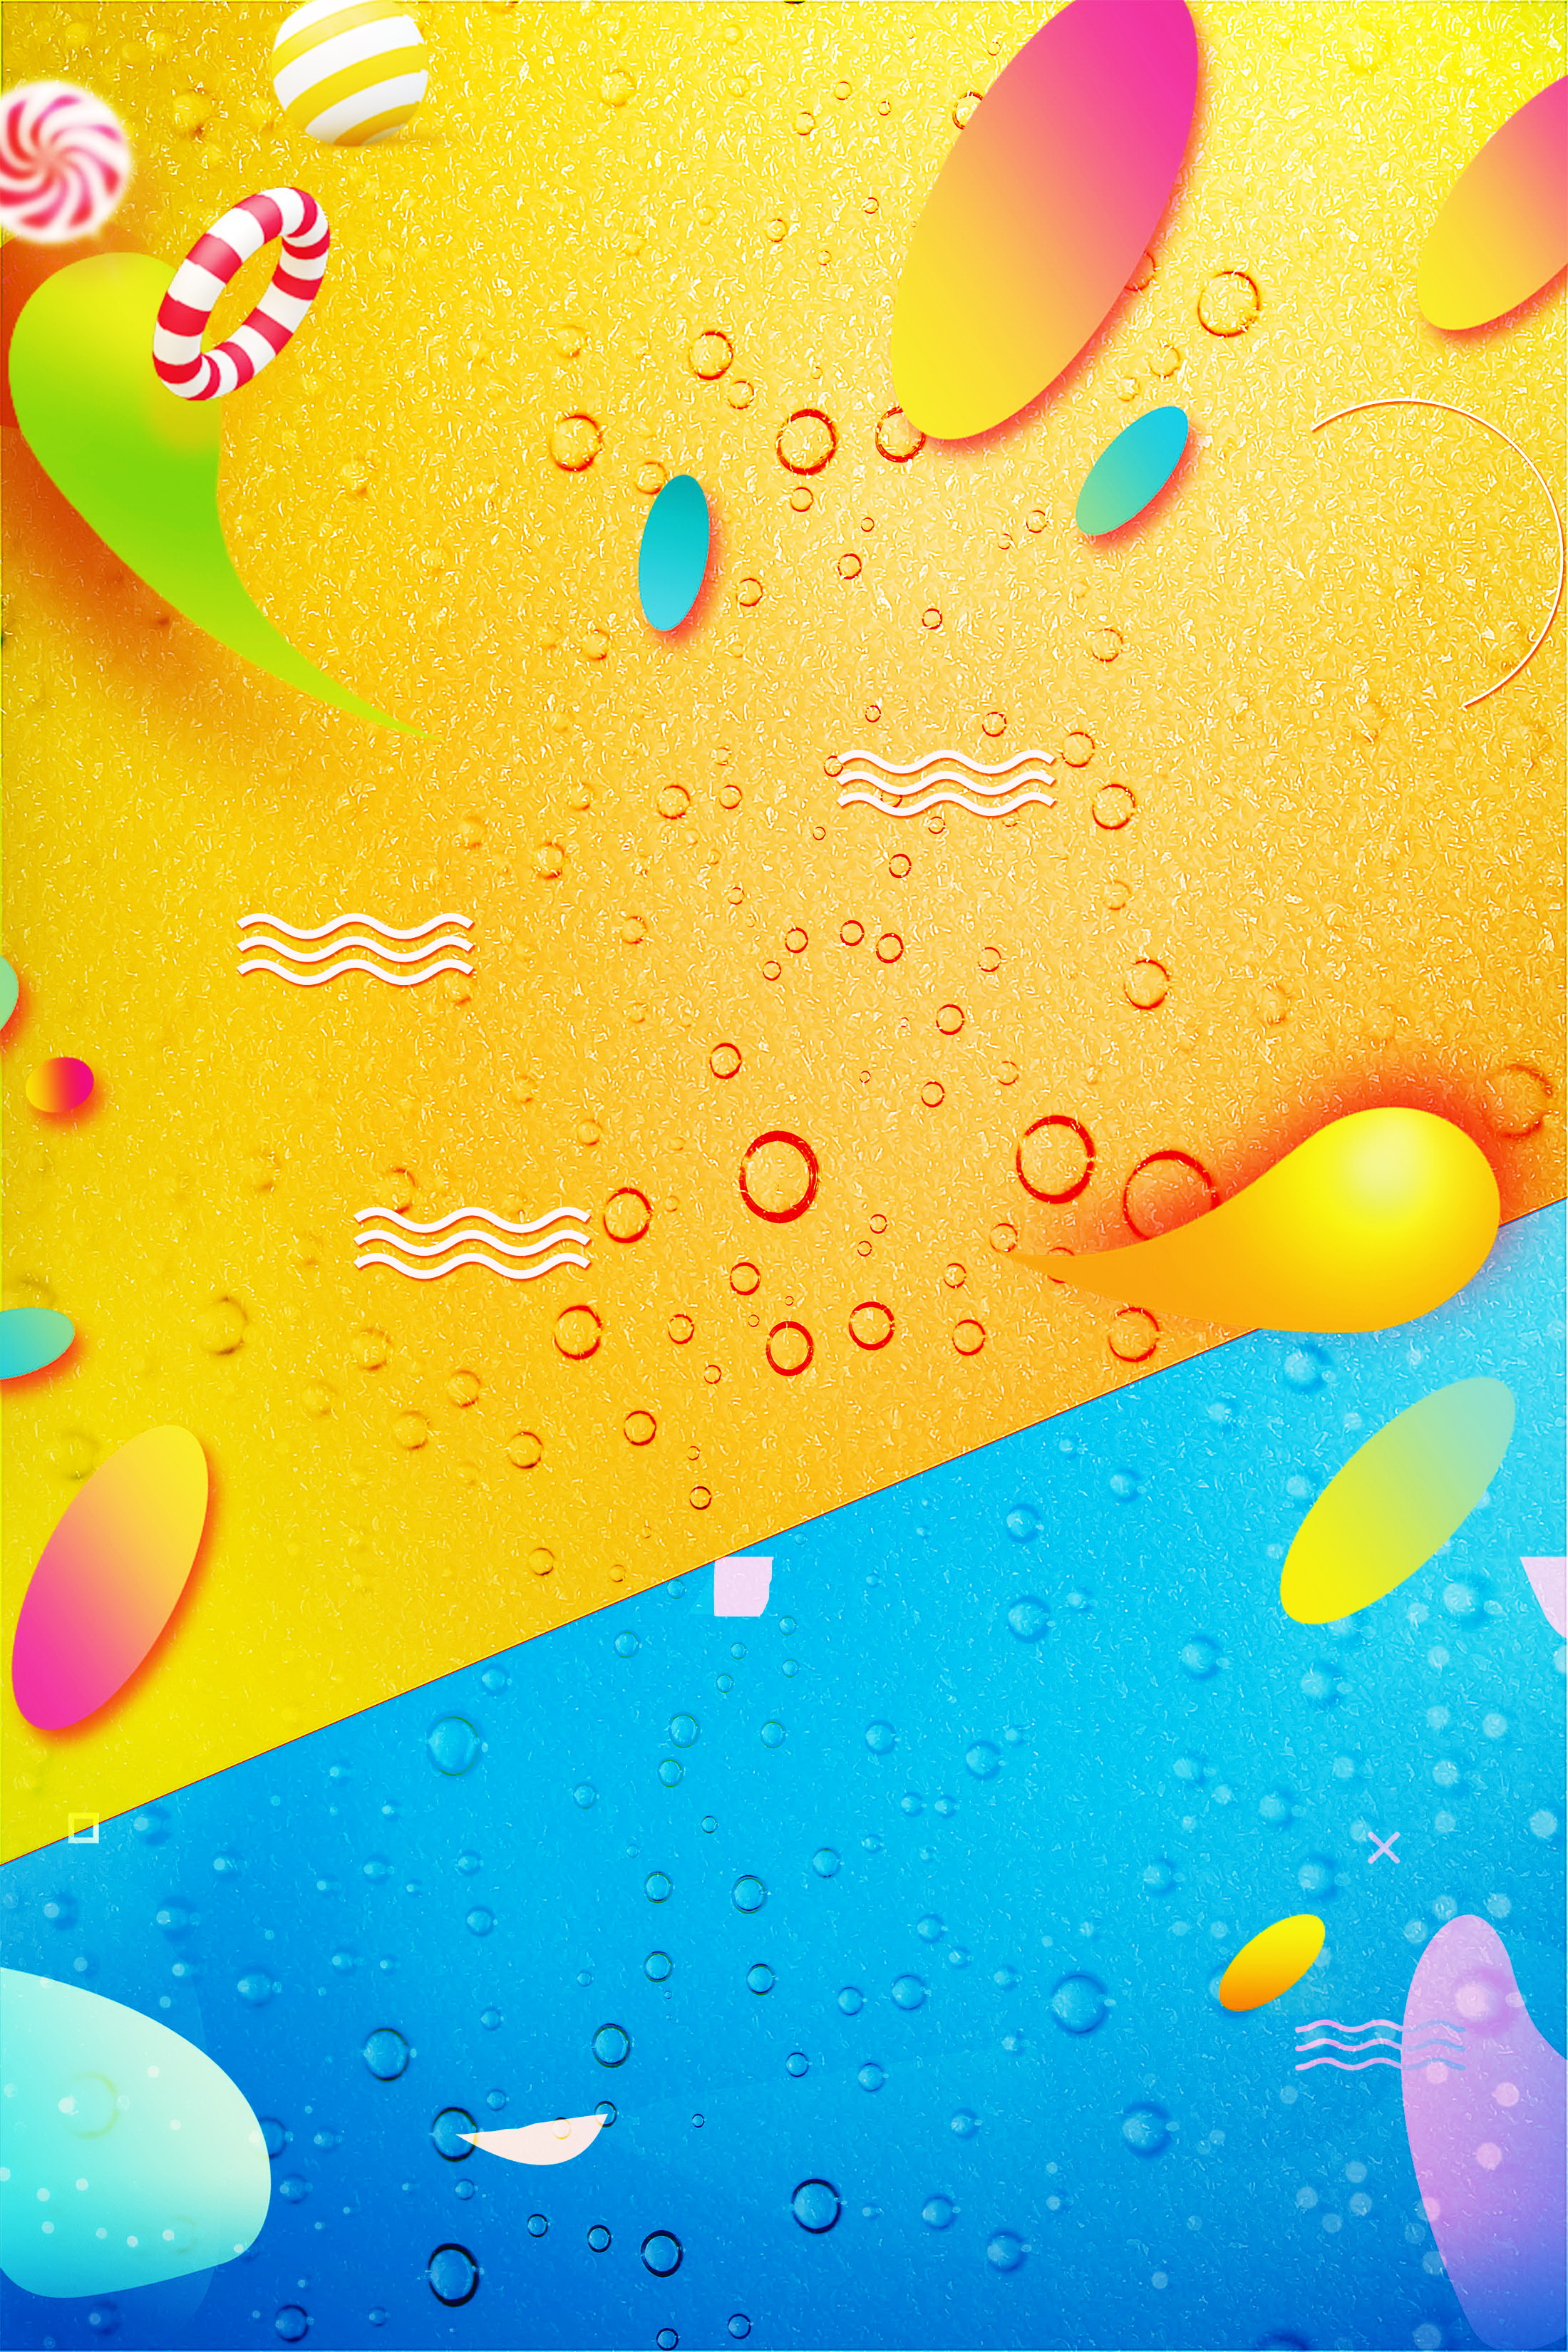 creative summer cool drink background template  fruit juice  summer  cool summer drink